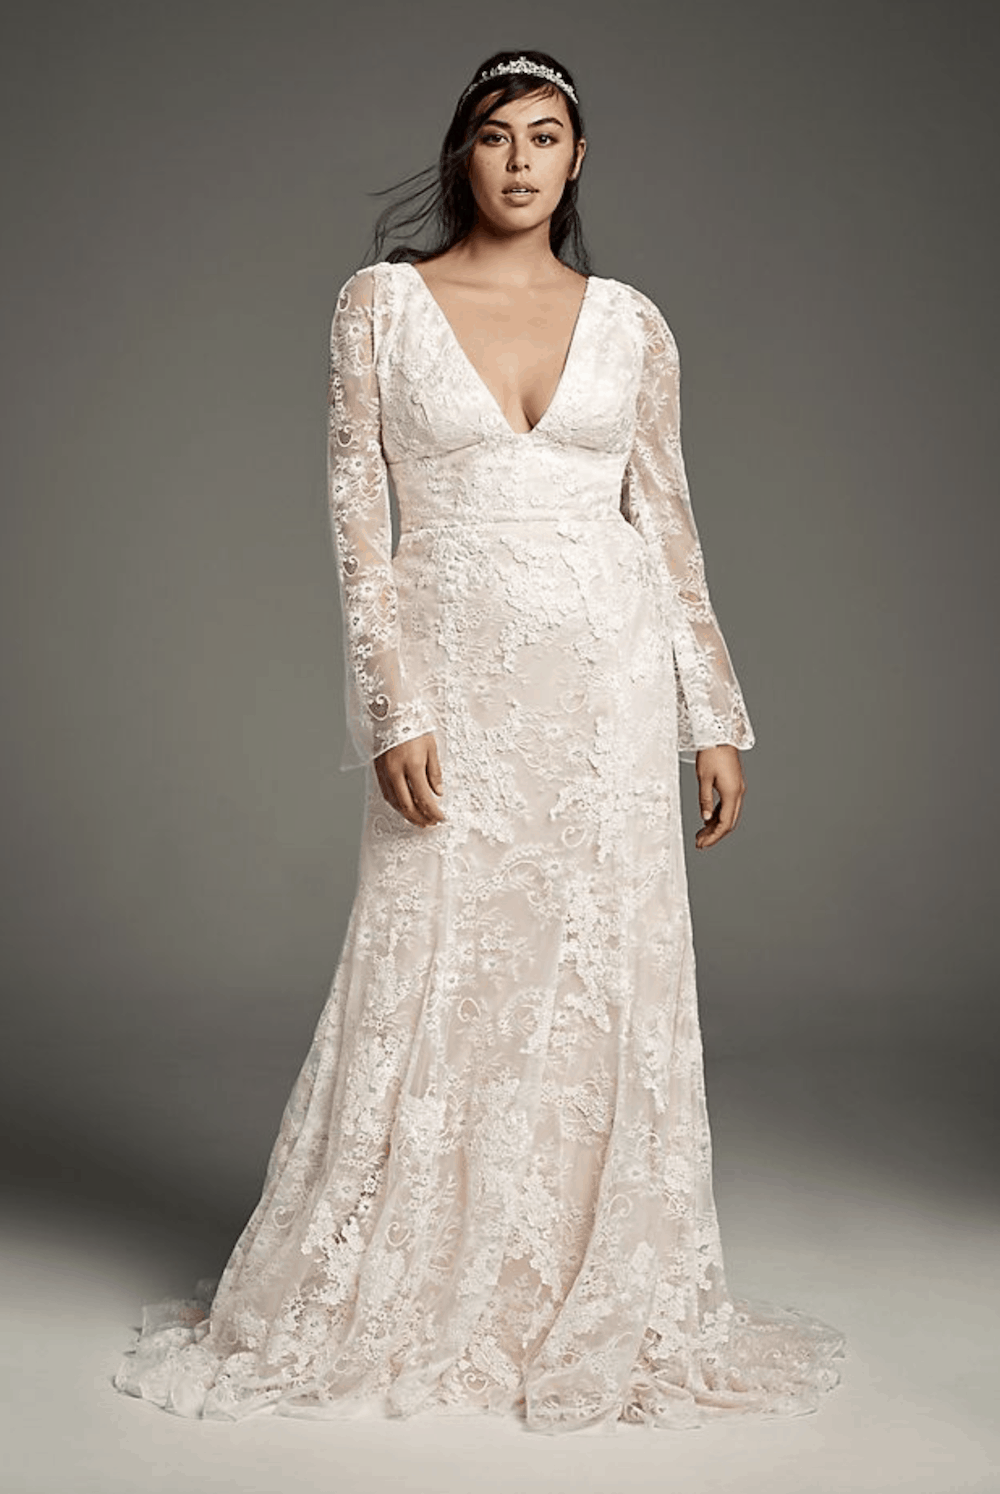 Simple Plus Size Wedding Dresses.27 Plus Size Wedding Dresses And Bridal Gowns That Are